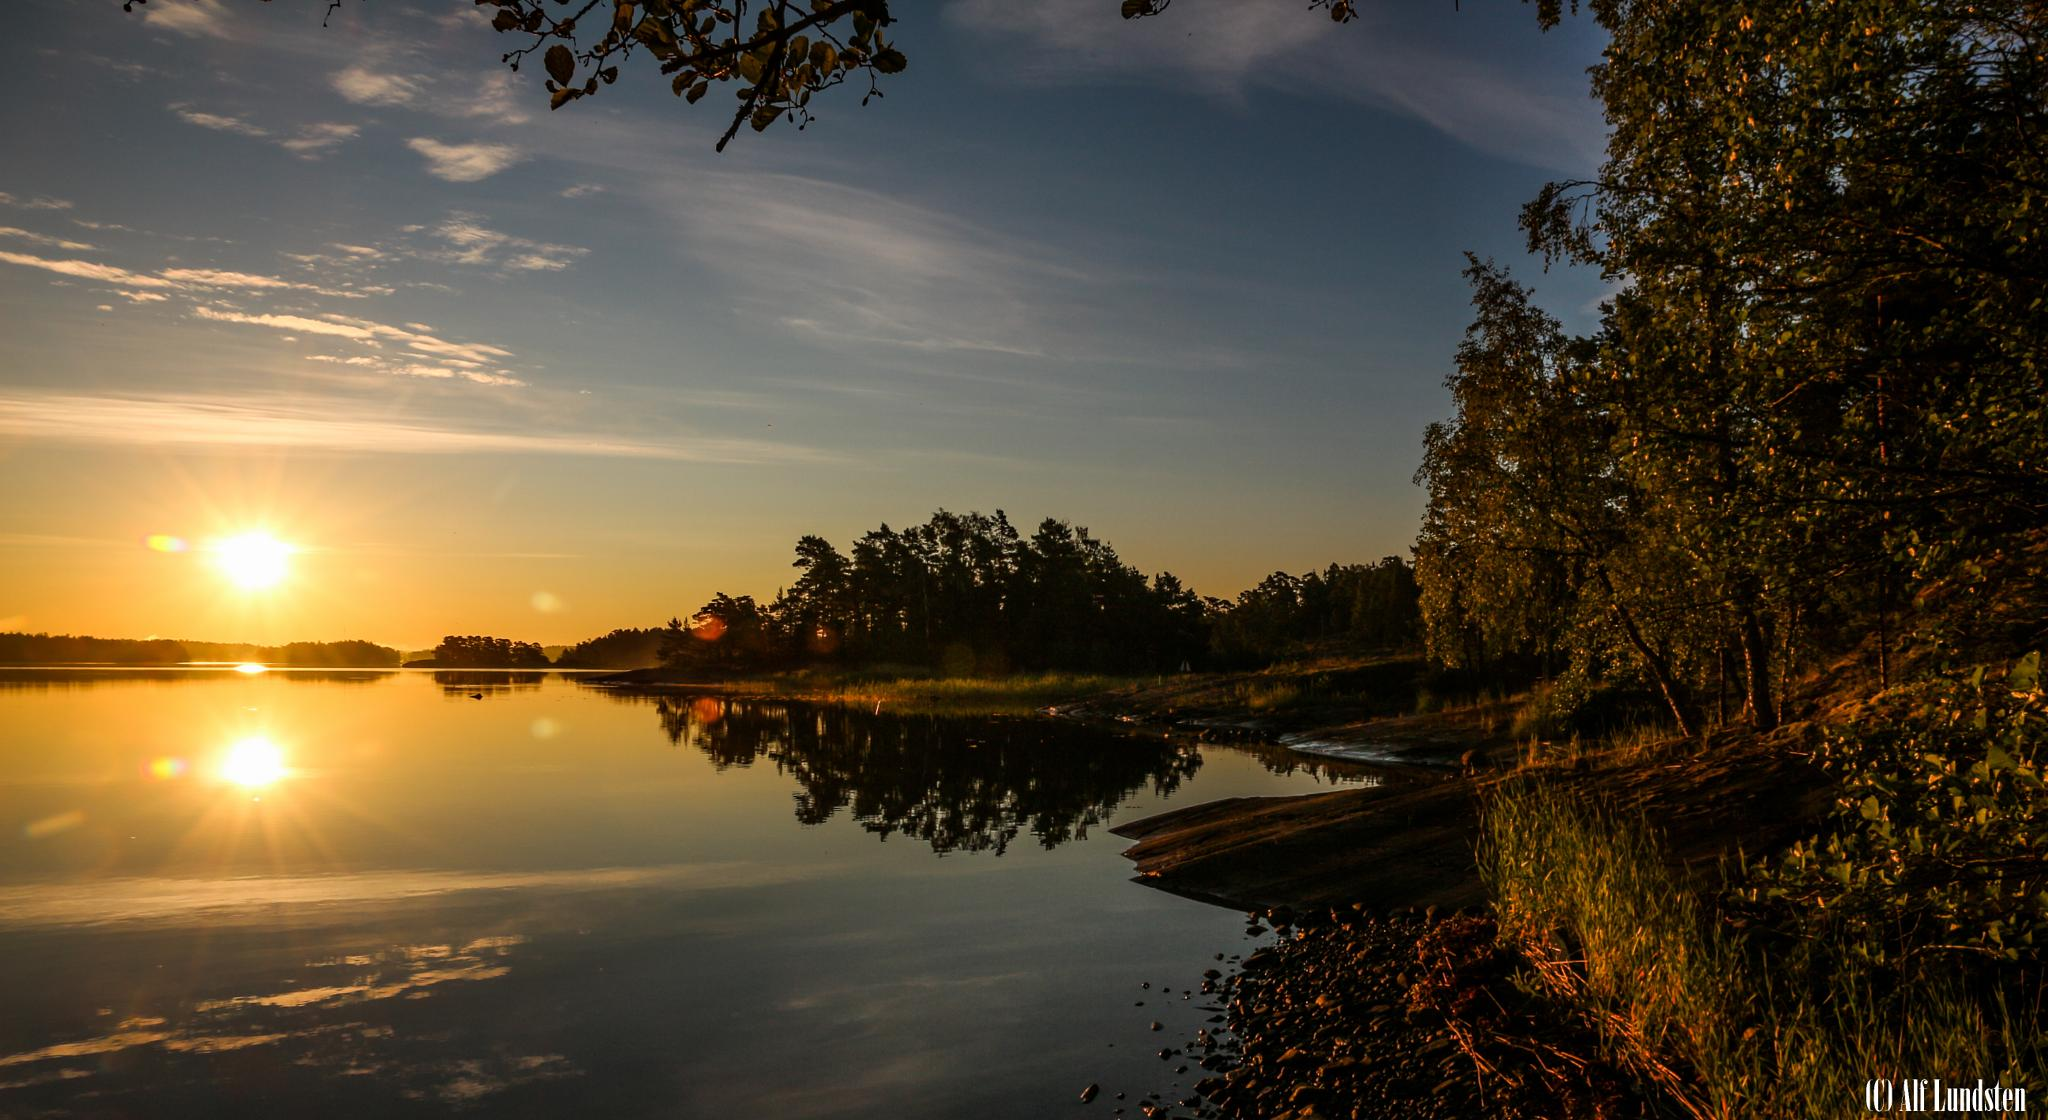 Magical Morning by alf lundsten